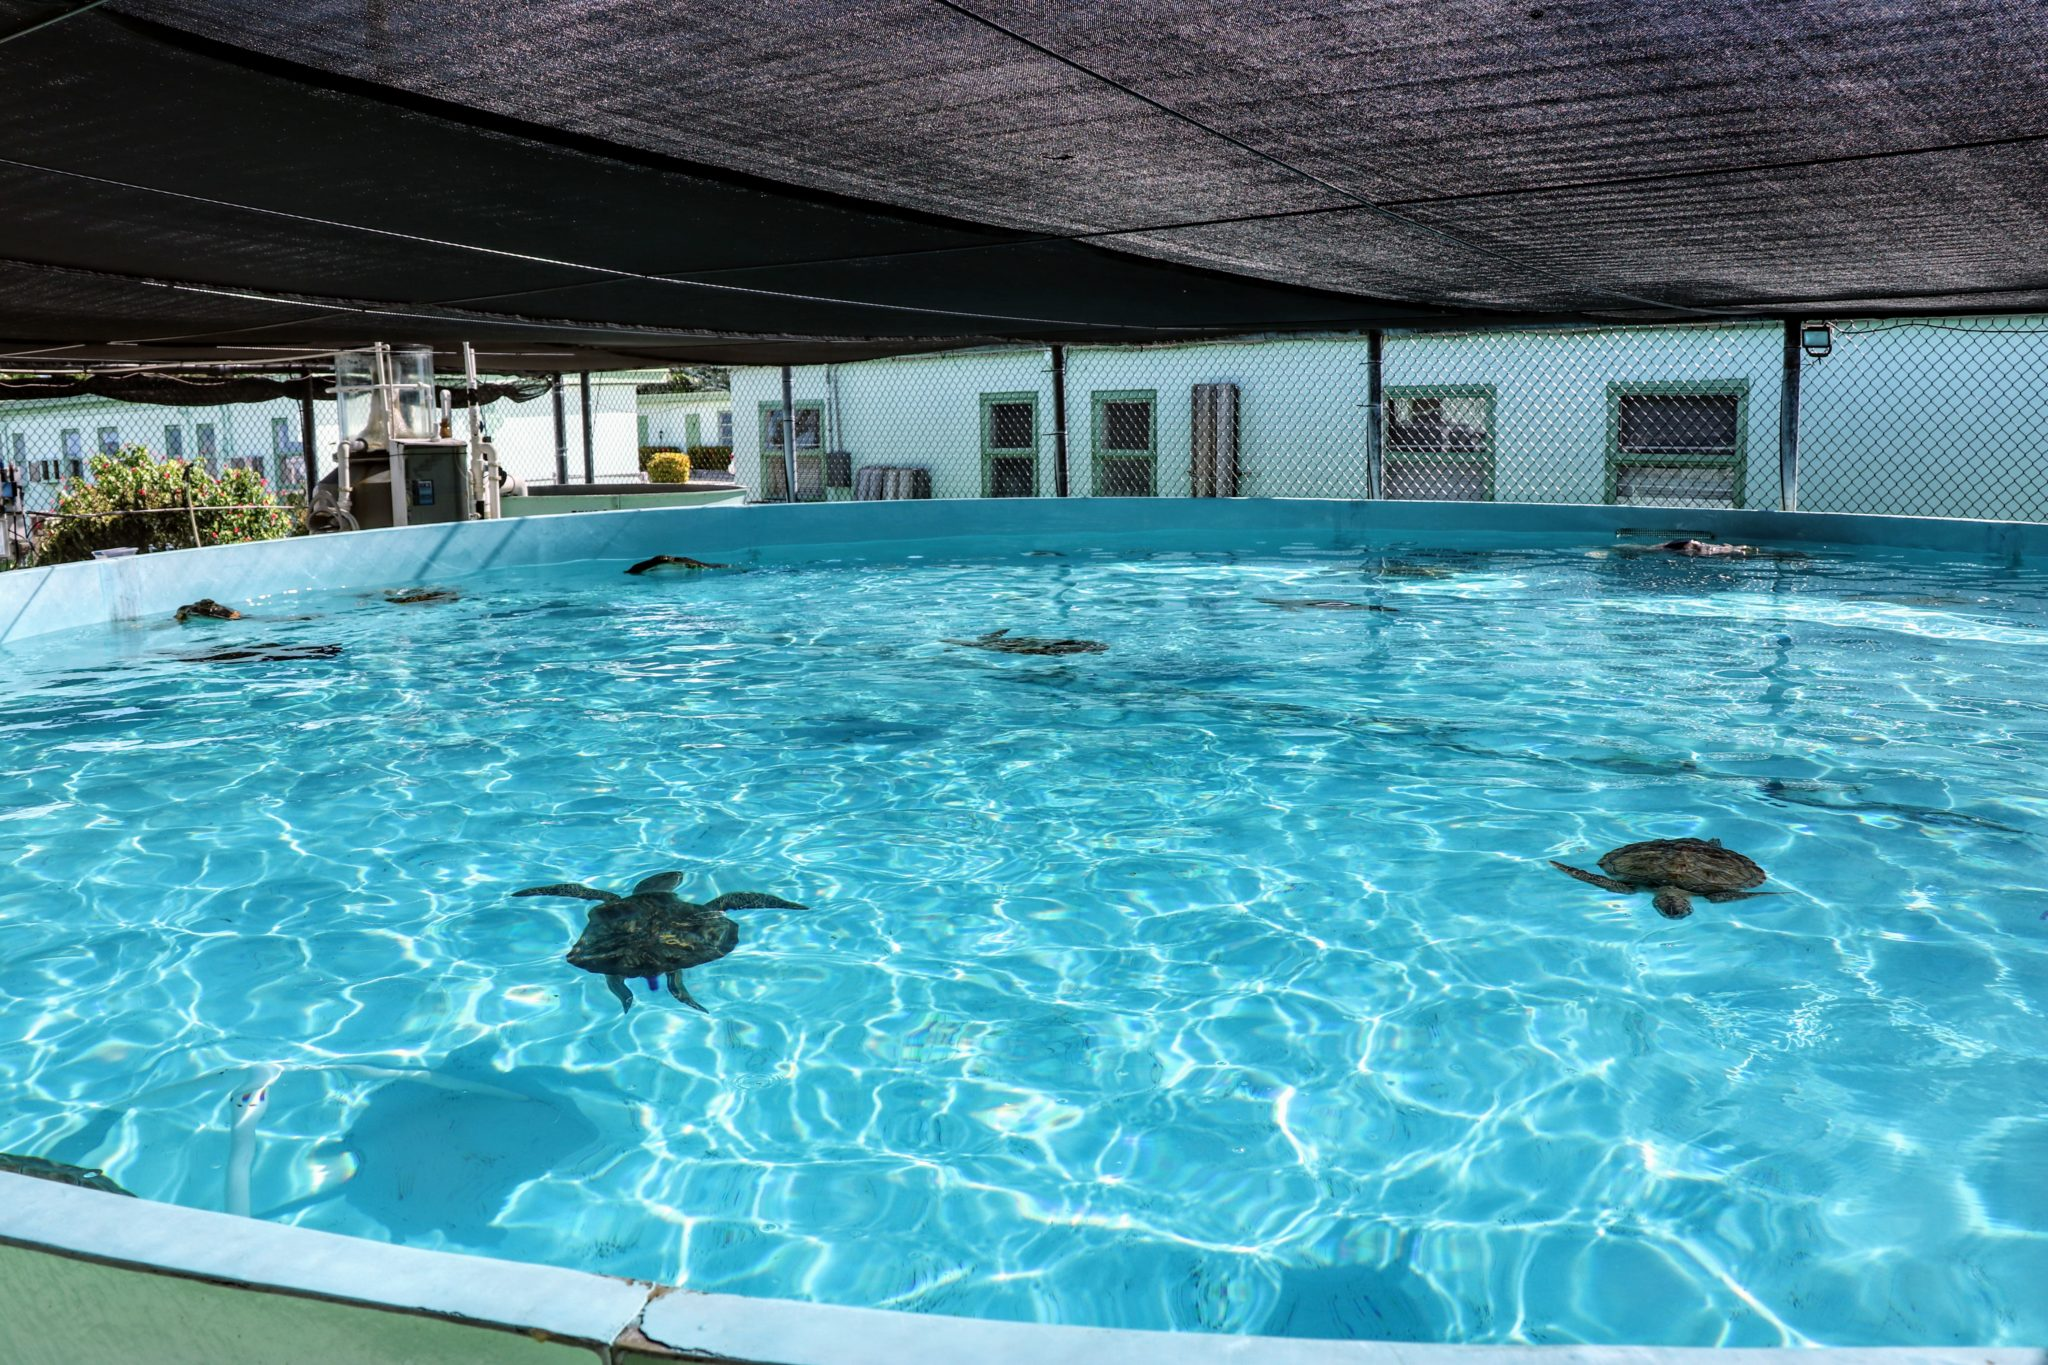 30,000 gallon pool at the Turtle Hospital with lots of sea turtles swimming in it